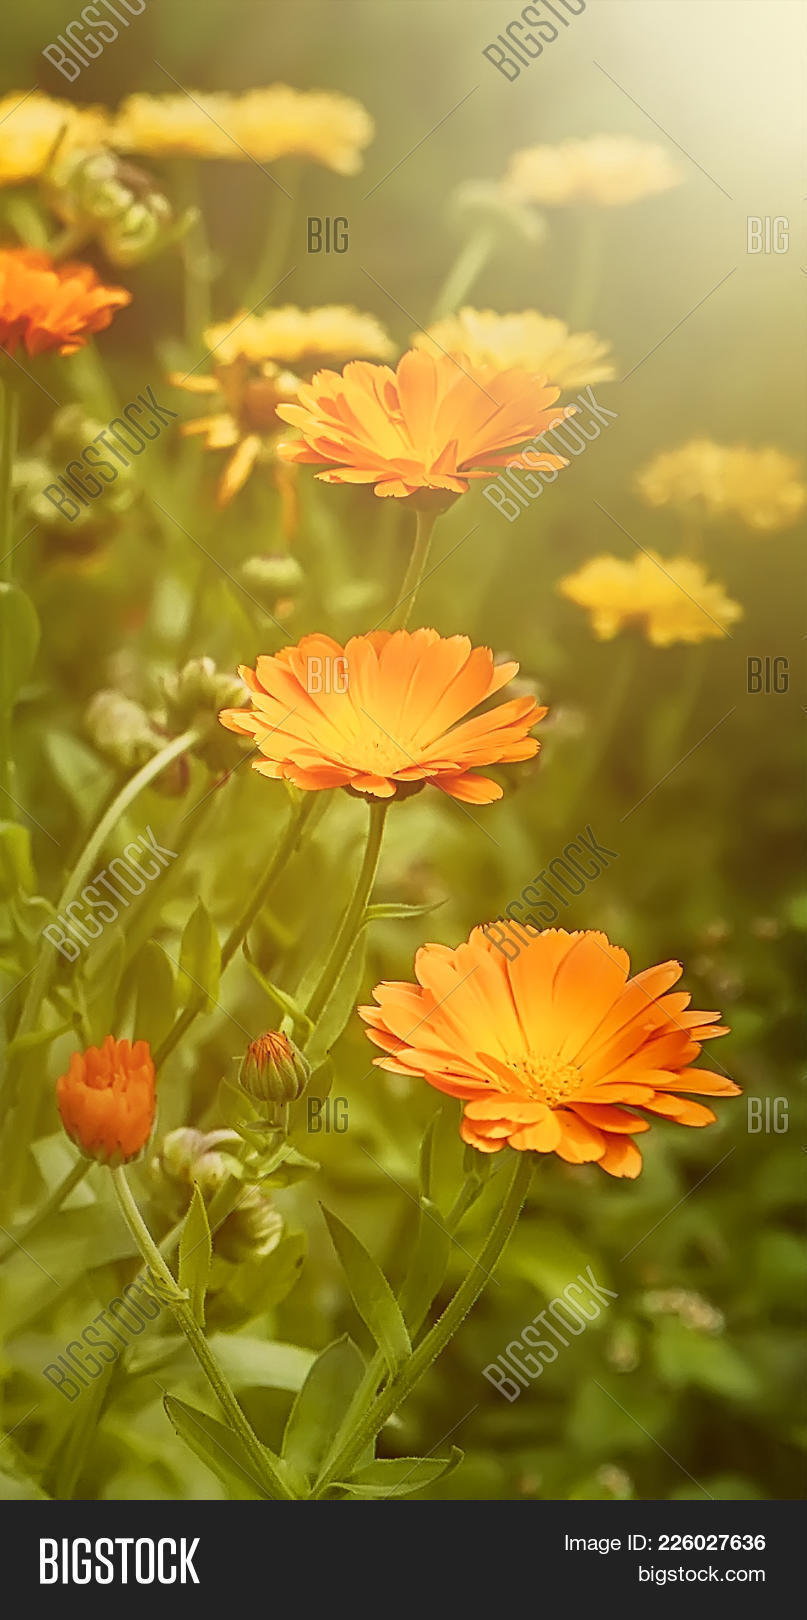 0146d2537 Beautiful Summer Background With Marigold Flowers Field In Sunlight. Nature  Scene With Blooming Cale